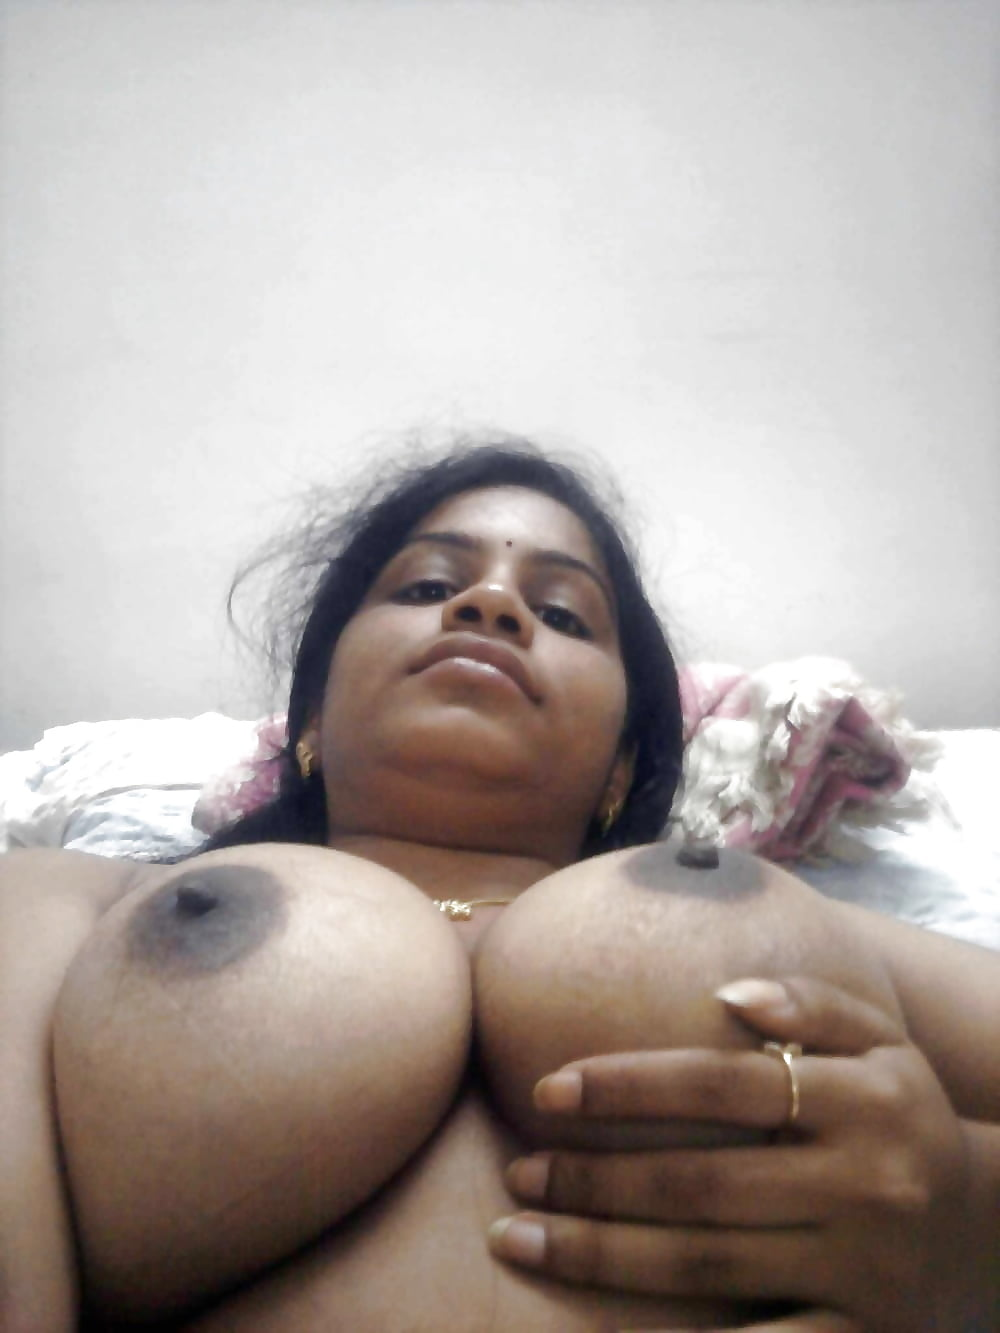 big-boobs-mallu-aunty-hot-amateur-naked-girl-laying-nude-on-bed